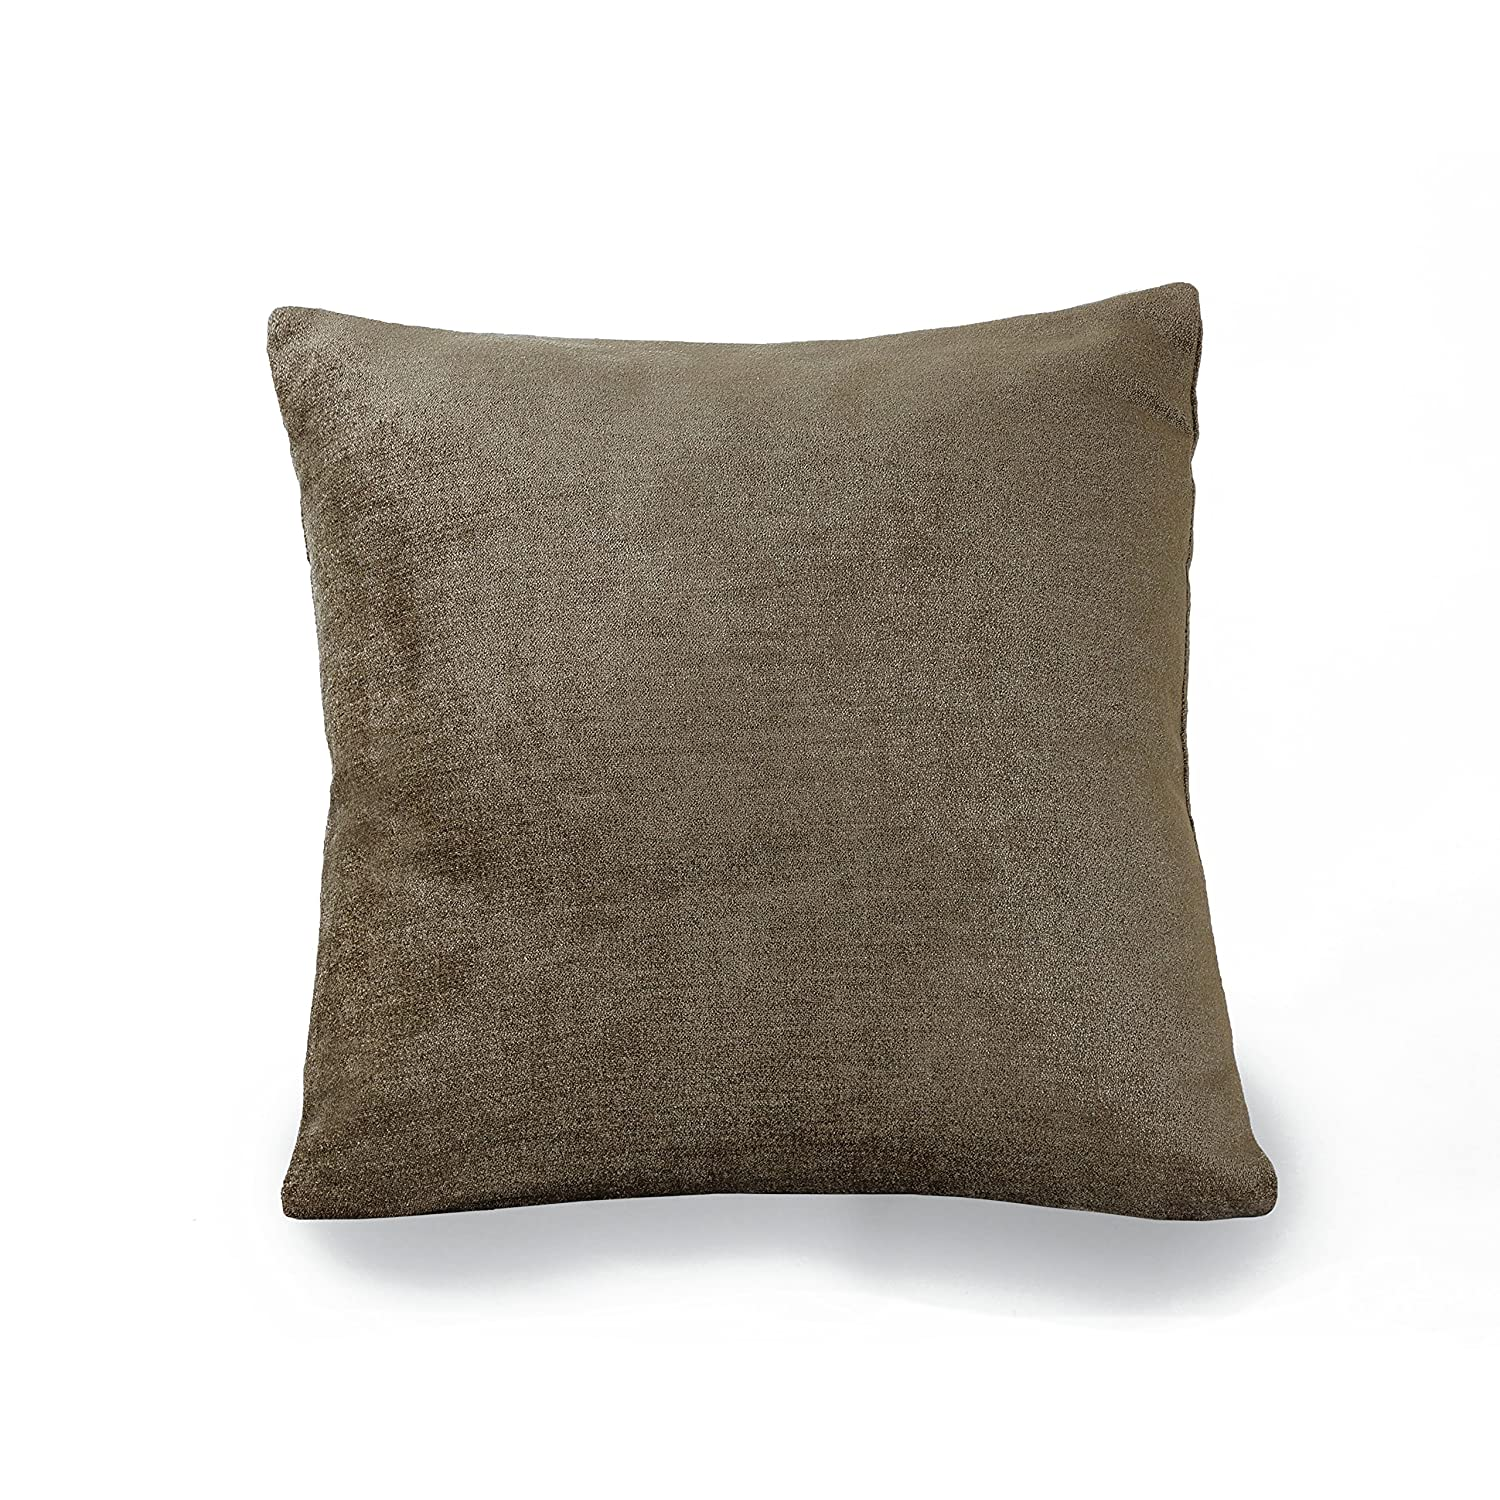 Smoke 18 x 18 Elrene Home Fashions 26865882018 Decorative Solid Velvet Regal Couch//Sofa//Bed Cushion Pillow 18 x 18